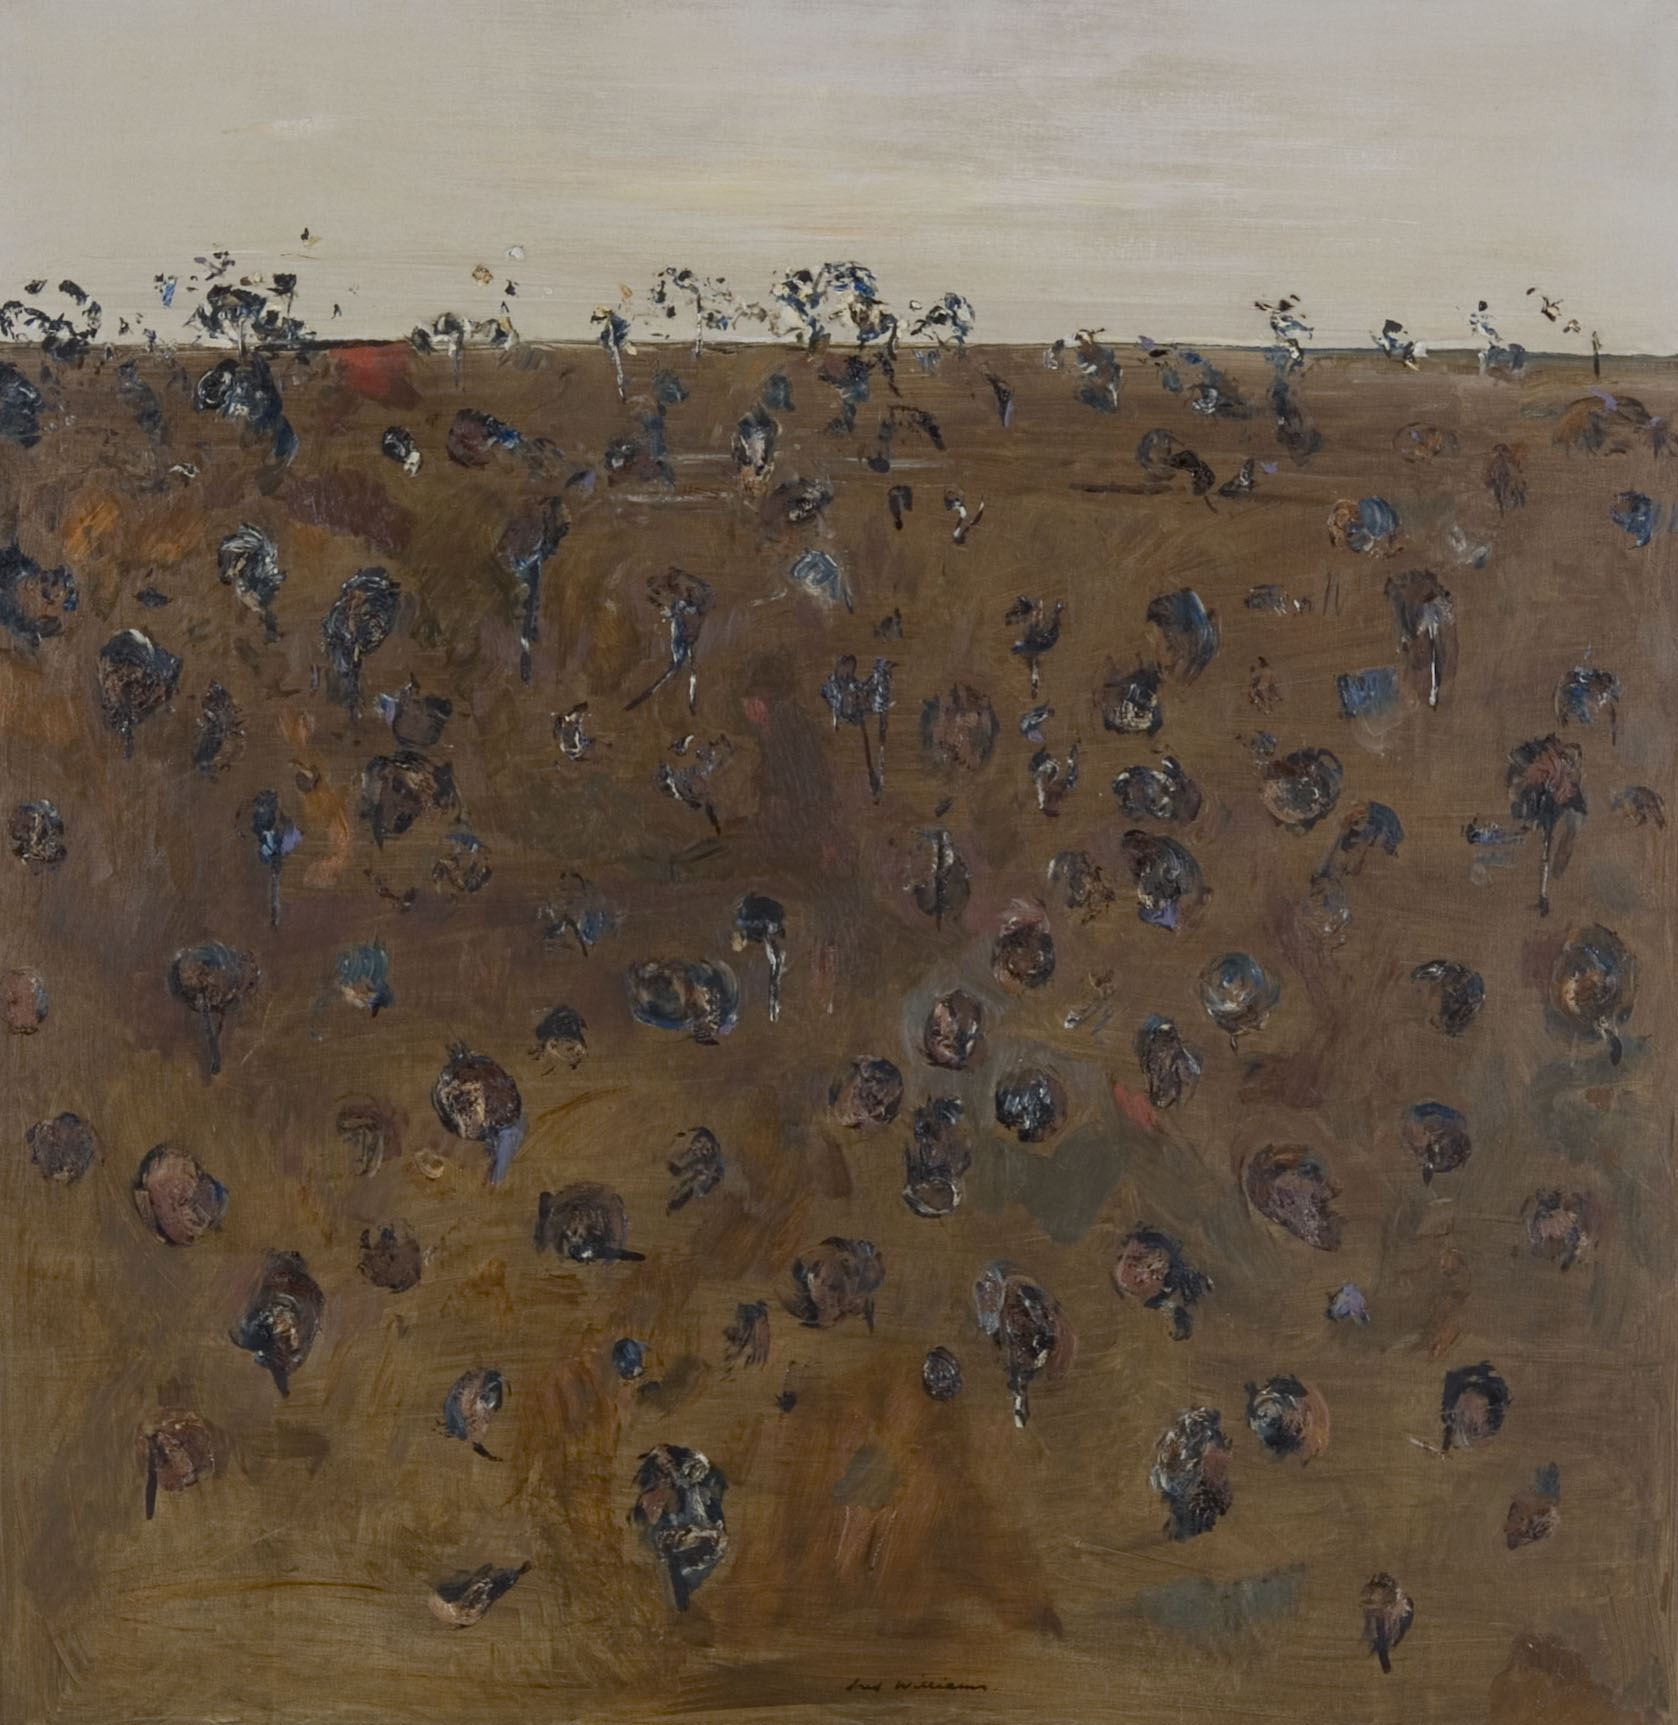 Image: Fred WILLIAMS Landscape in Upwey 1965-66 oil on canvas 136.7 x 134.0cm Purchased 1966 Newcastle Art Gallery collection © Newcastle Art Gallery